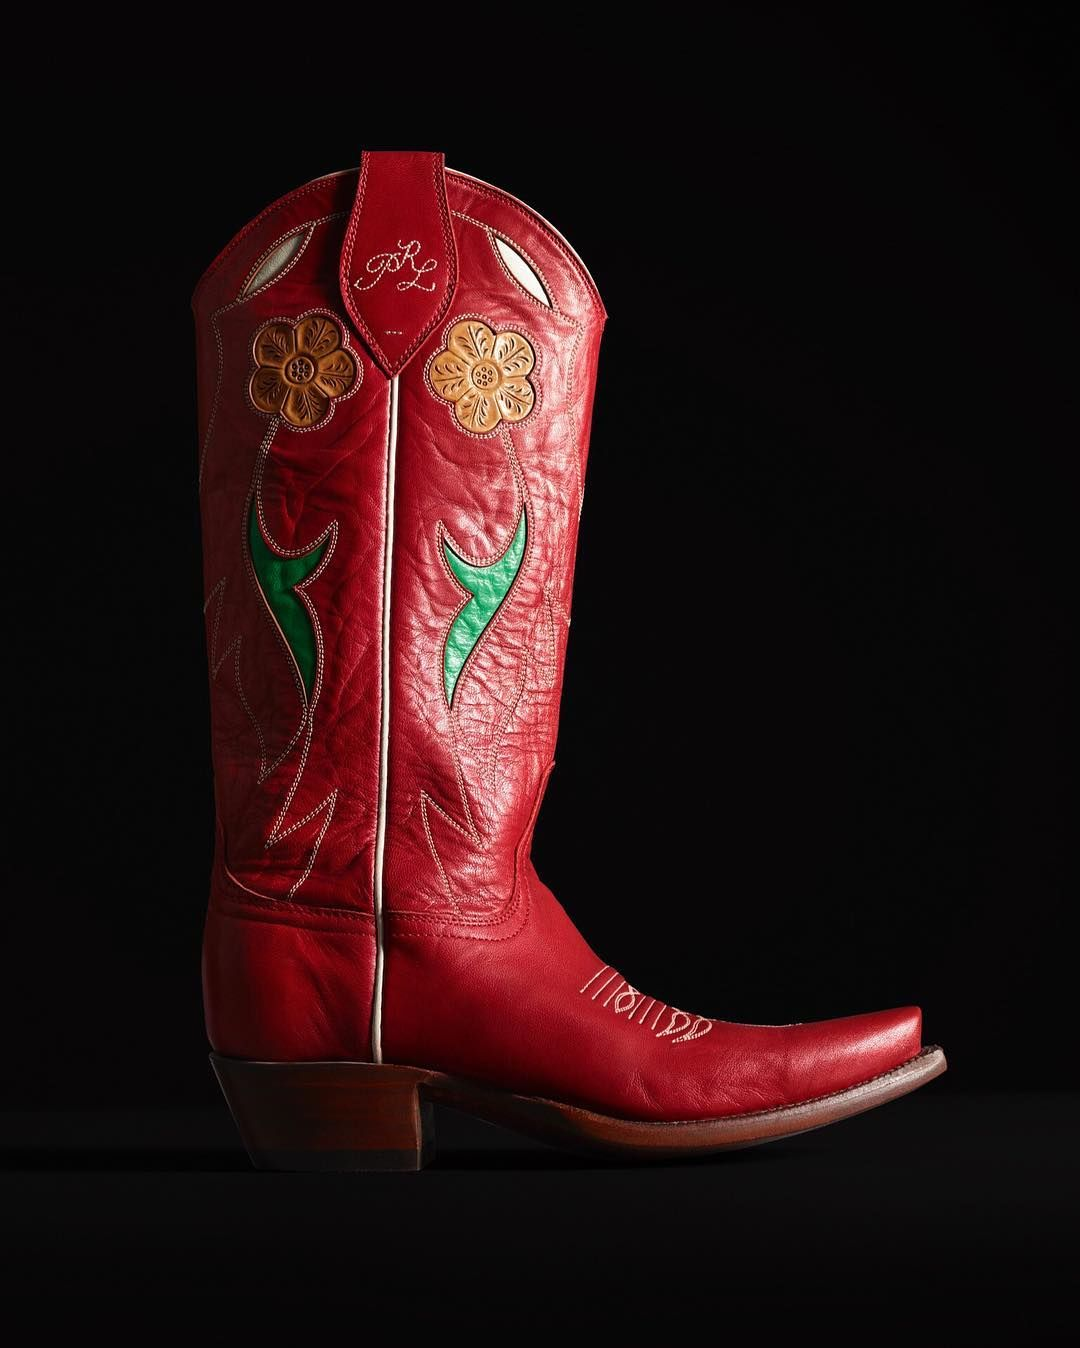 Boots, Cowboy boots, Leather cowboy boots